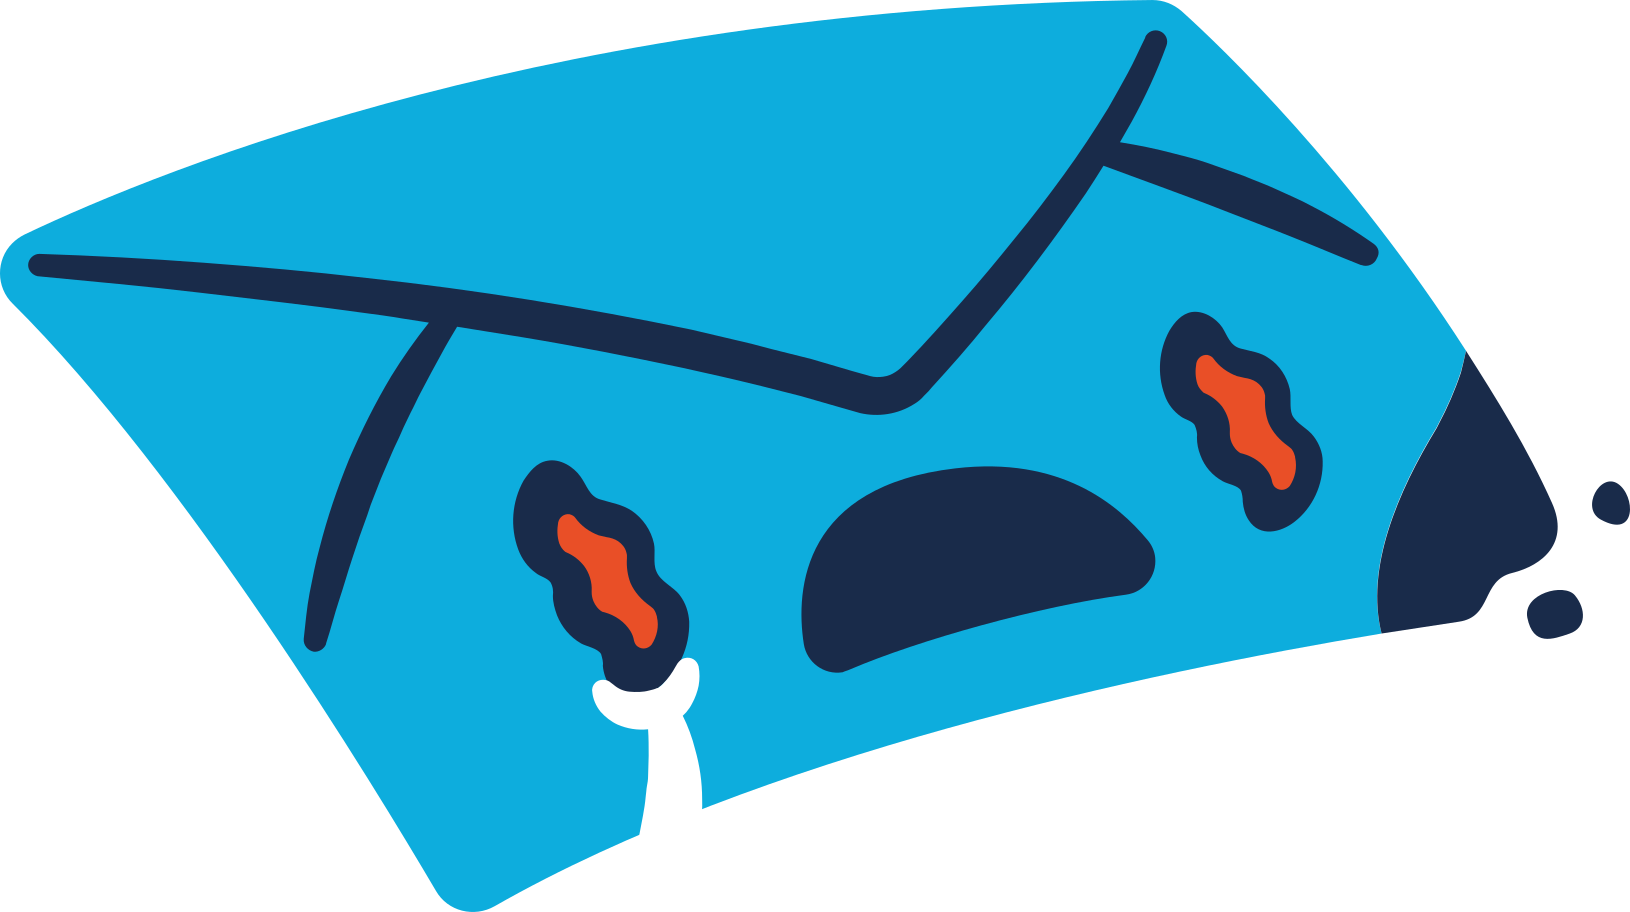 style burned envelope Vector images in PNG and SVG | Icons8 Illustrations